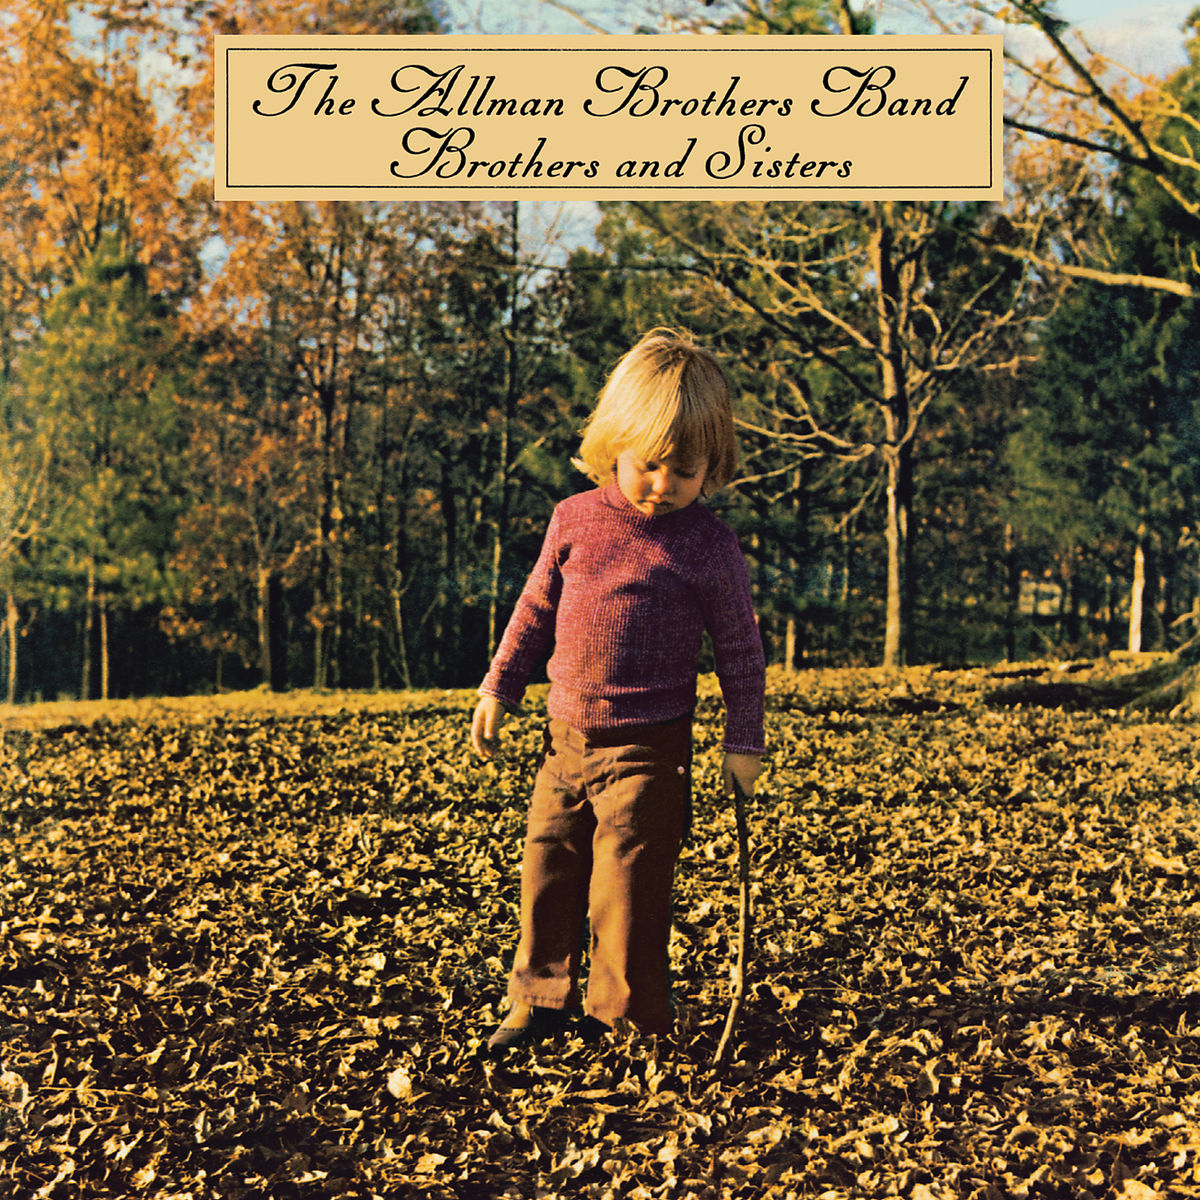 The-Allman-Brothers-Band-Brothers-and-Sisters